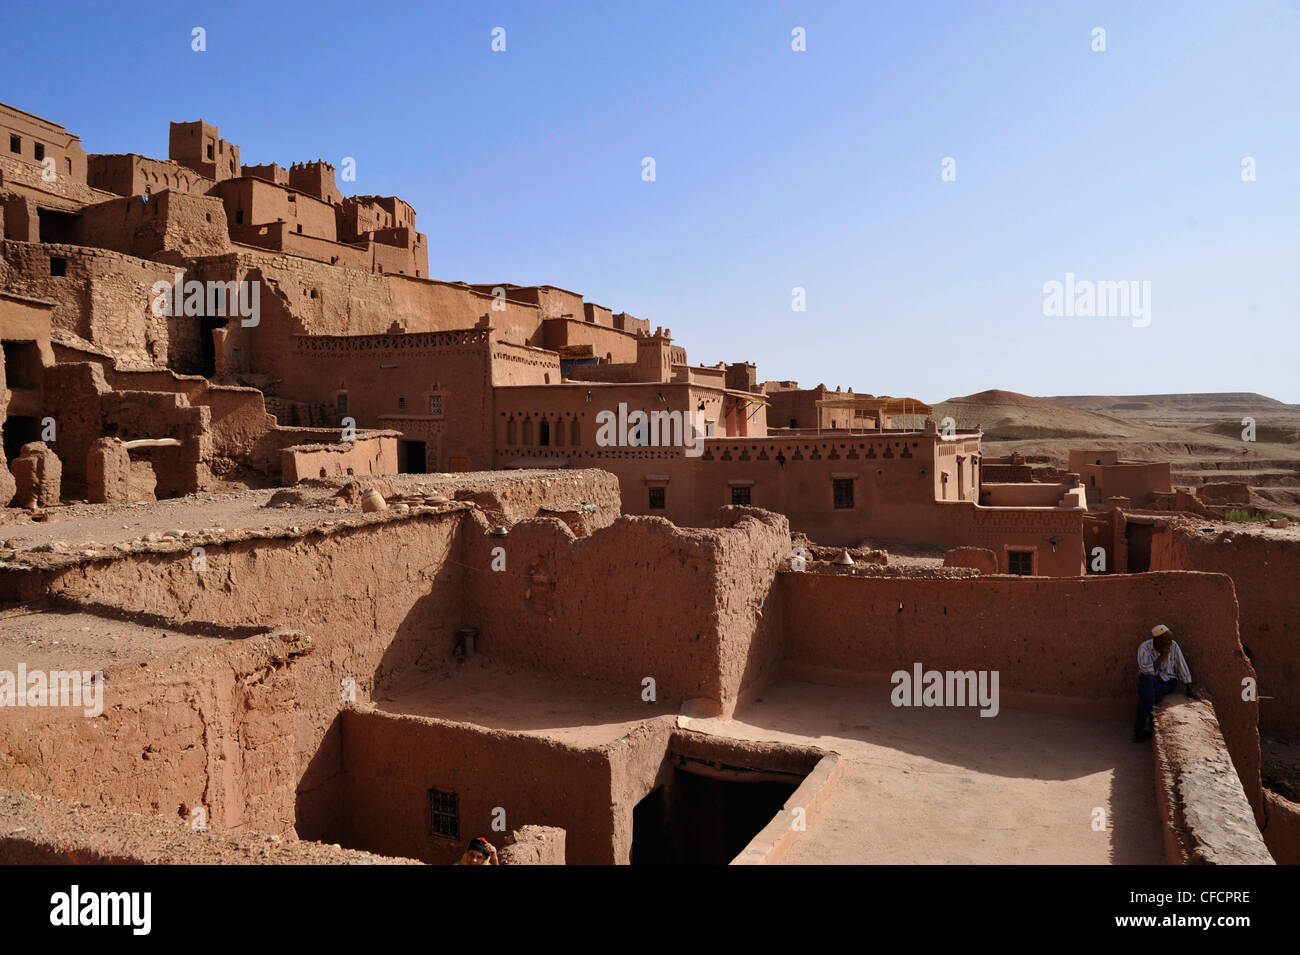 View above the flat roofs kasbah ait benhaddou ait benhaddou atlas mountains